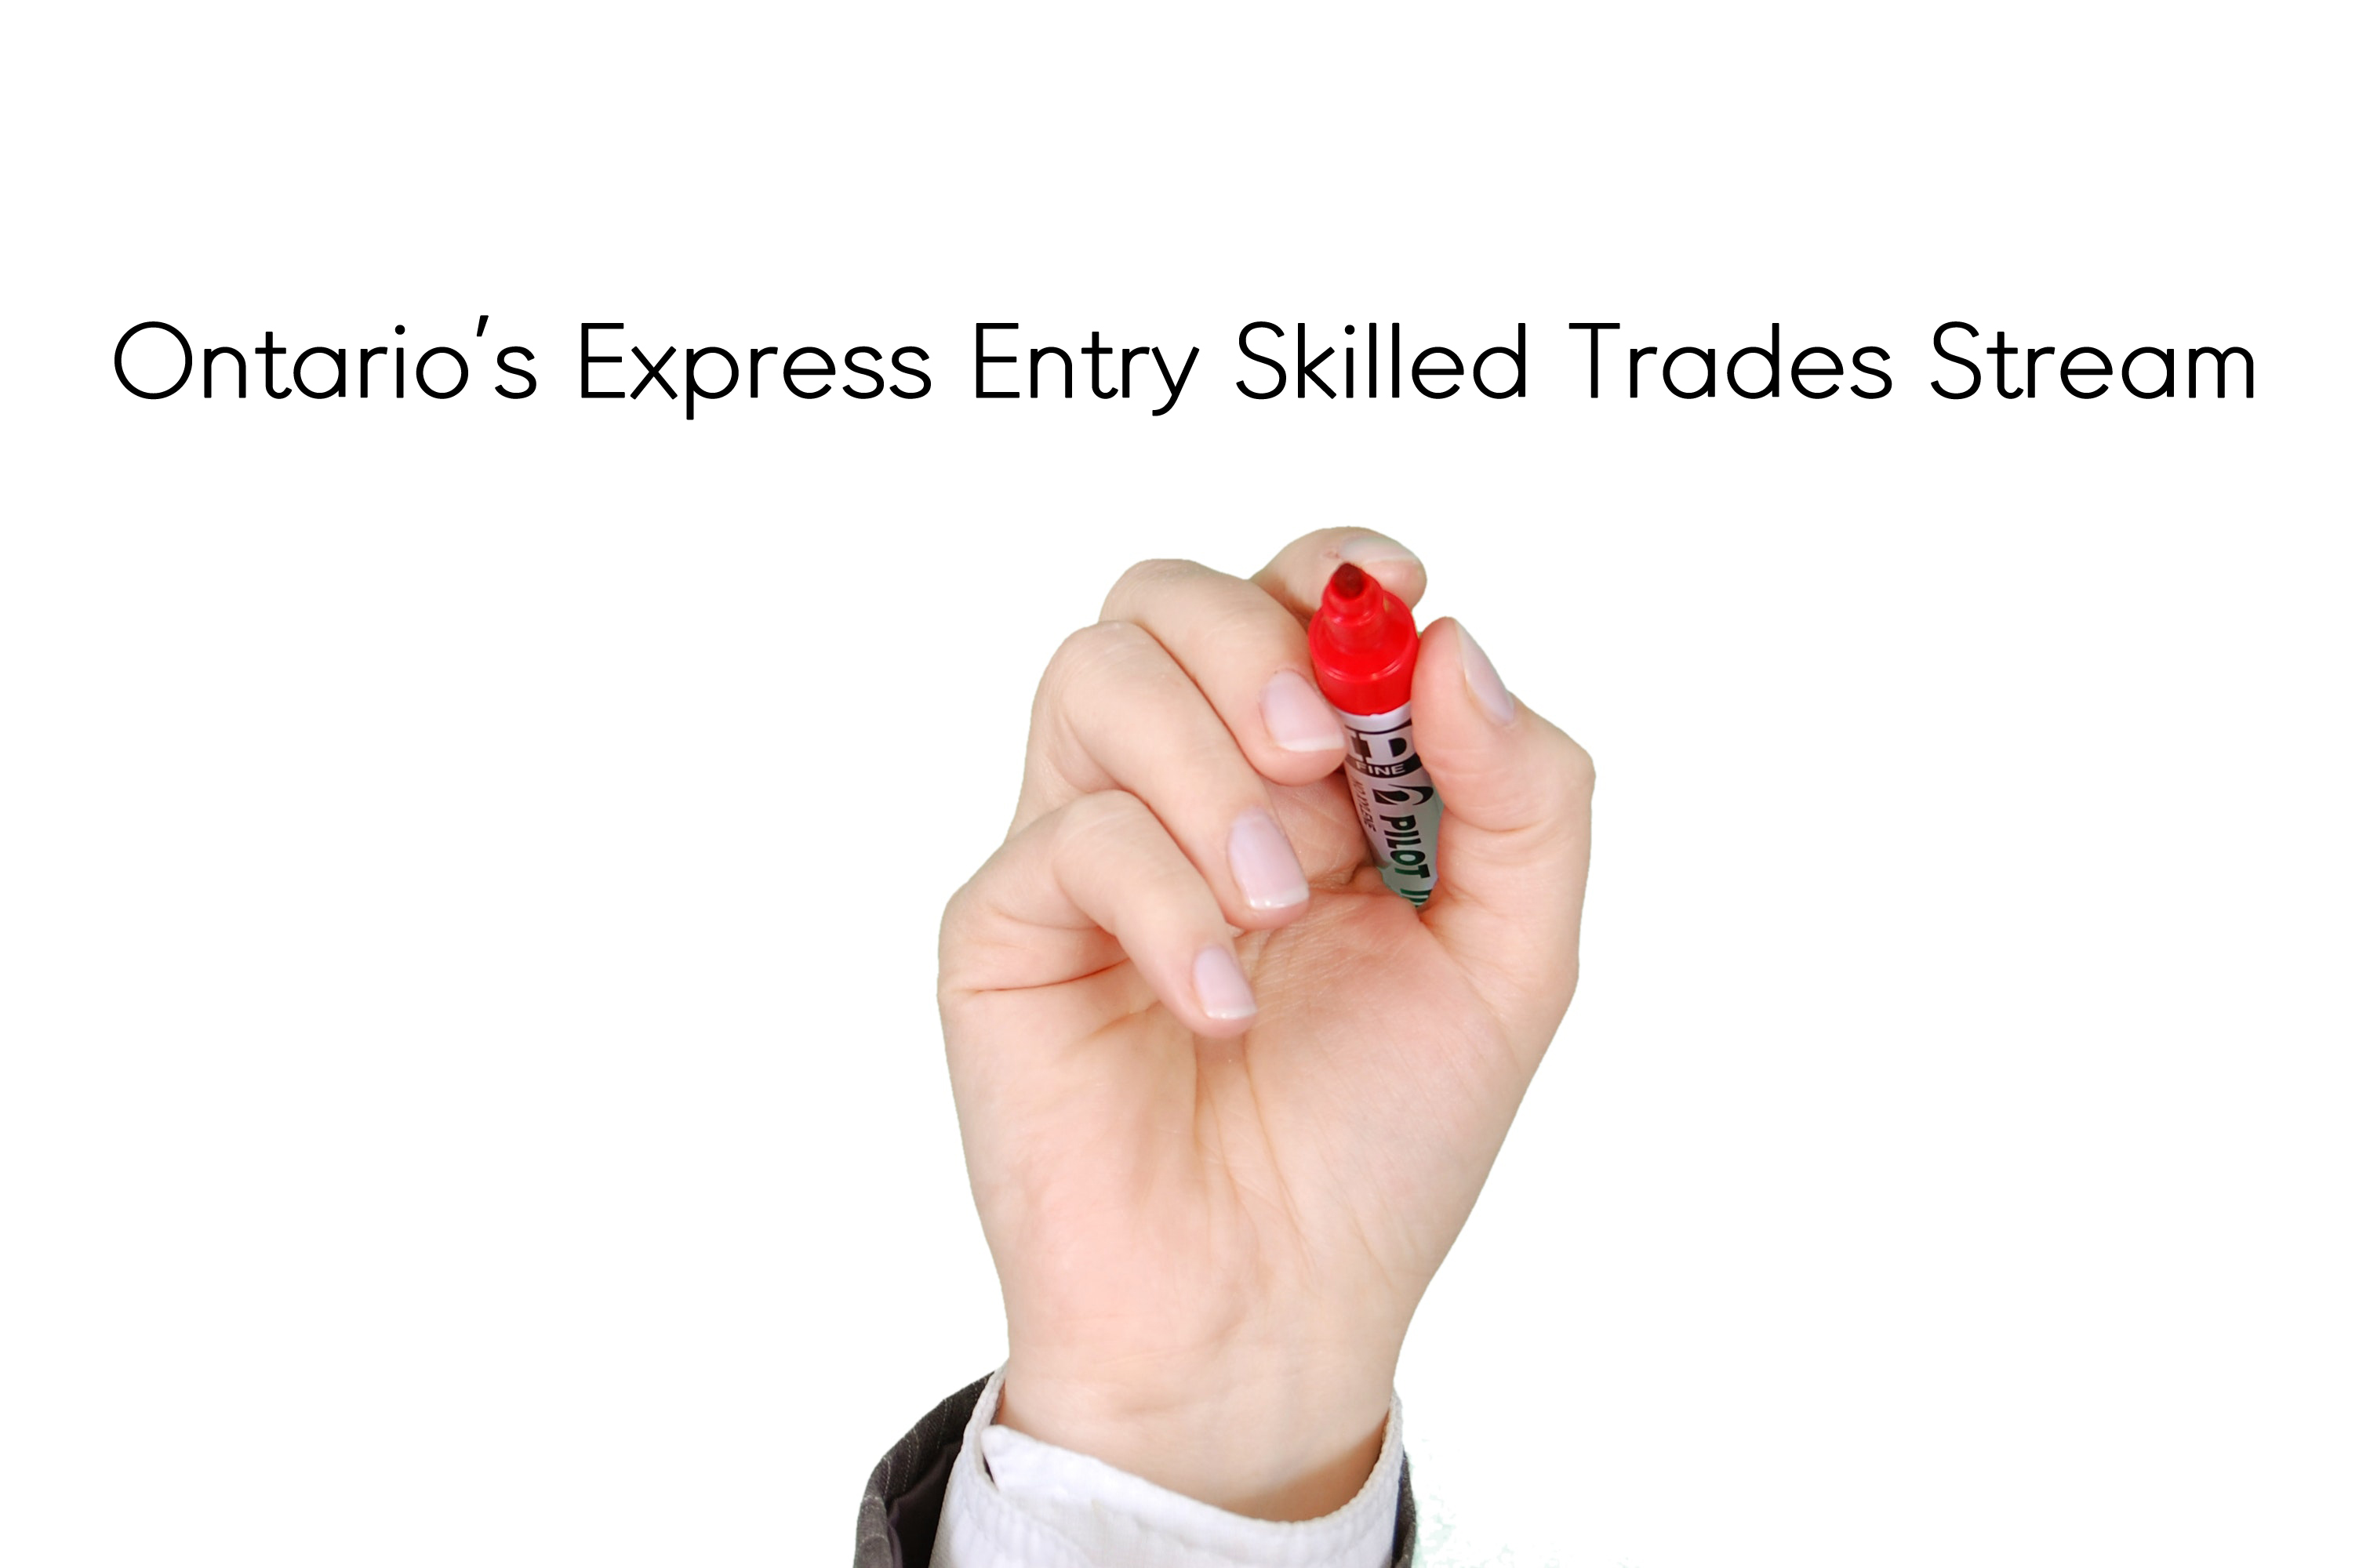 Ontario's Express Entry Skilled Trades Stream 지원방법 및 자격조건 안내